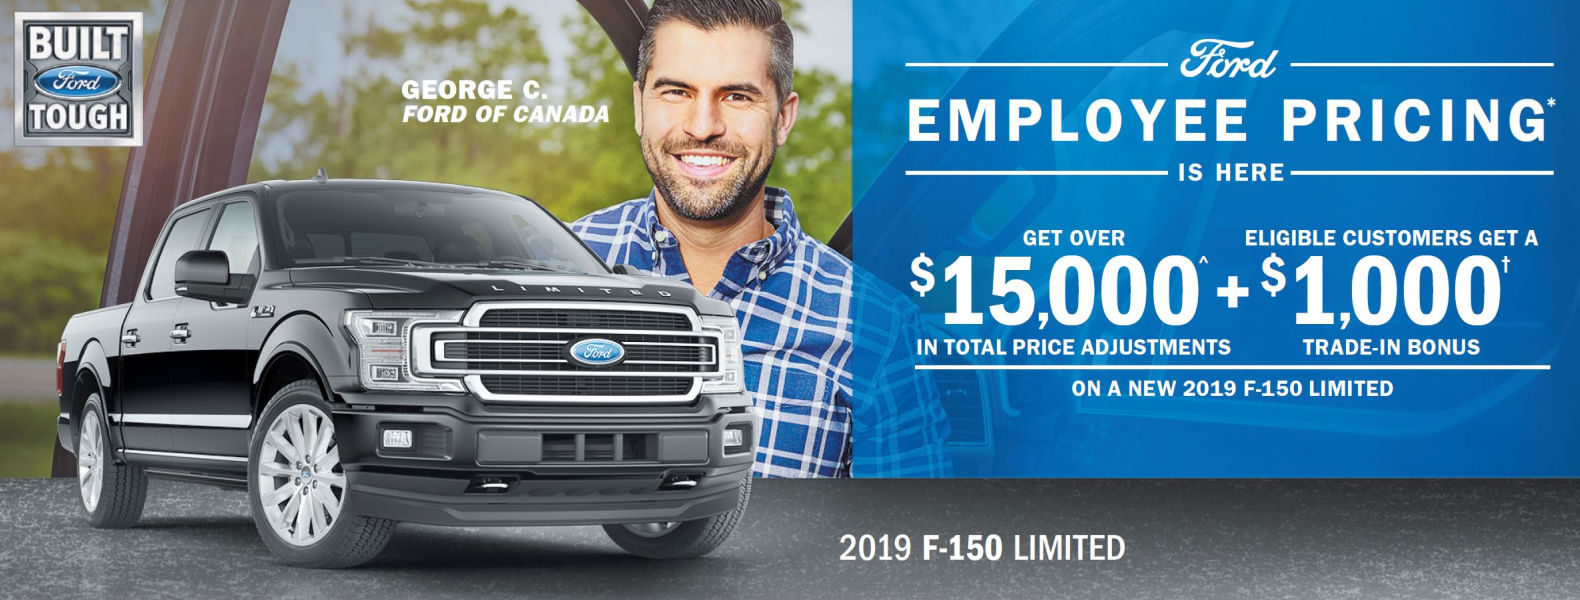 Employee Pricing Ford F-150 Smiths Falls